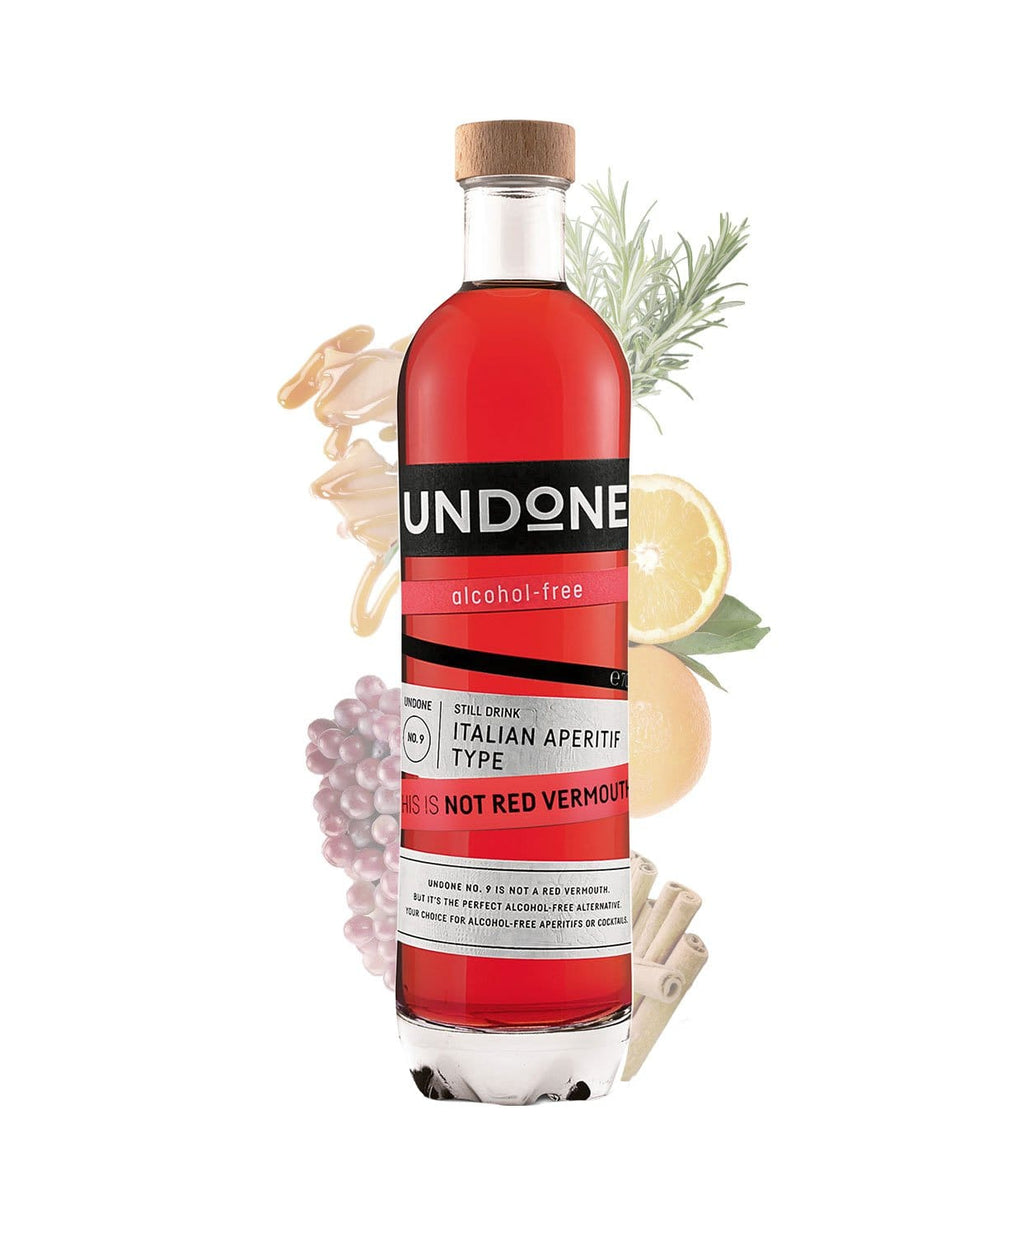 UNDONE This is NOT Red Vermouth! NO.9 Italian Aperitif Type